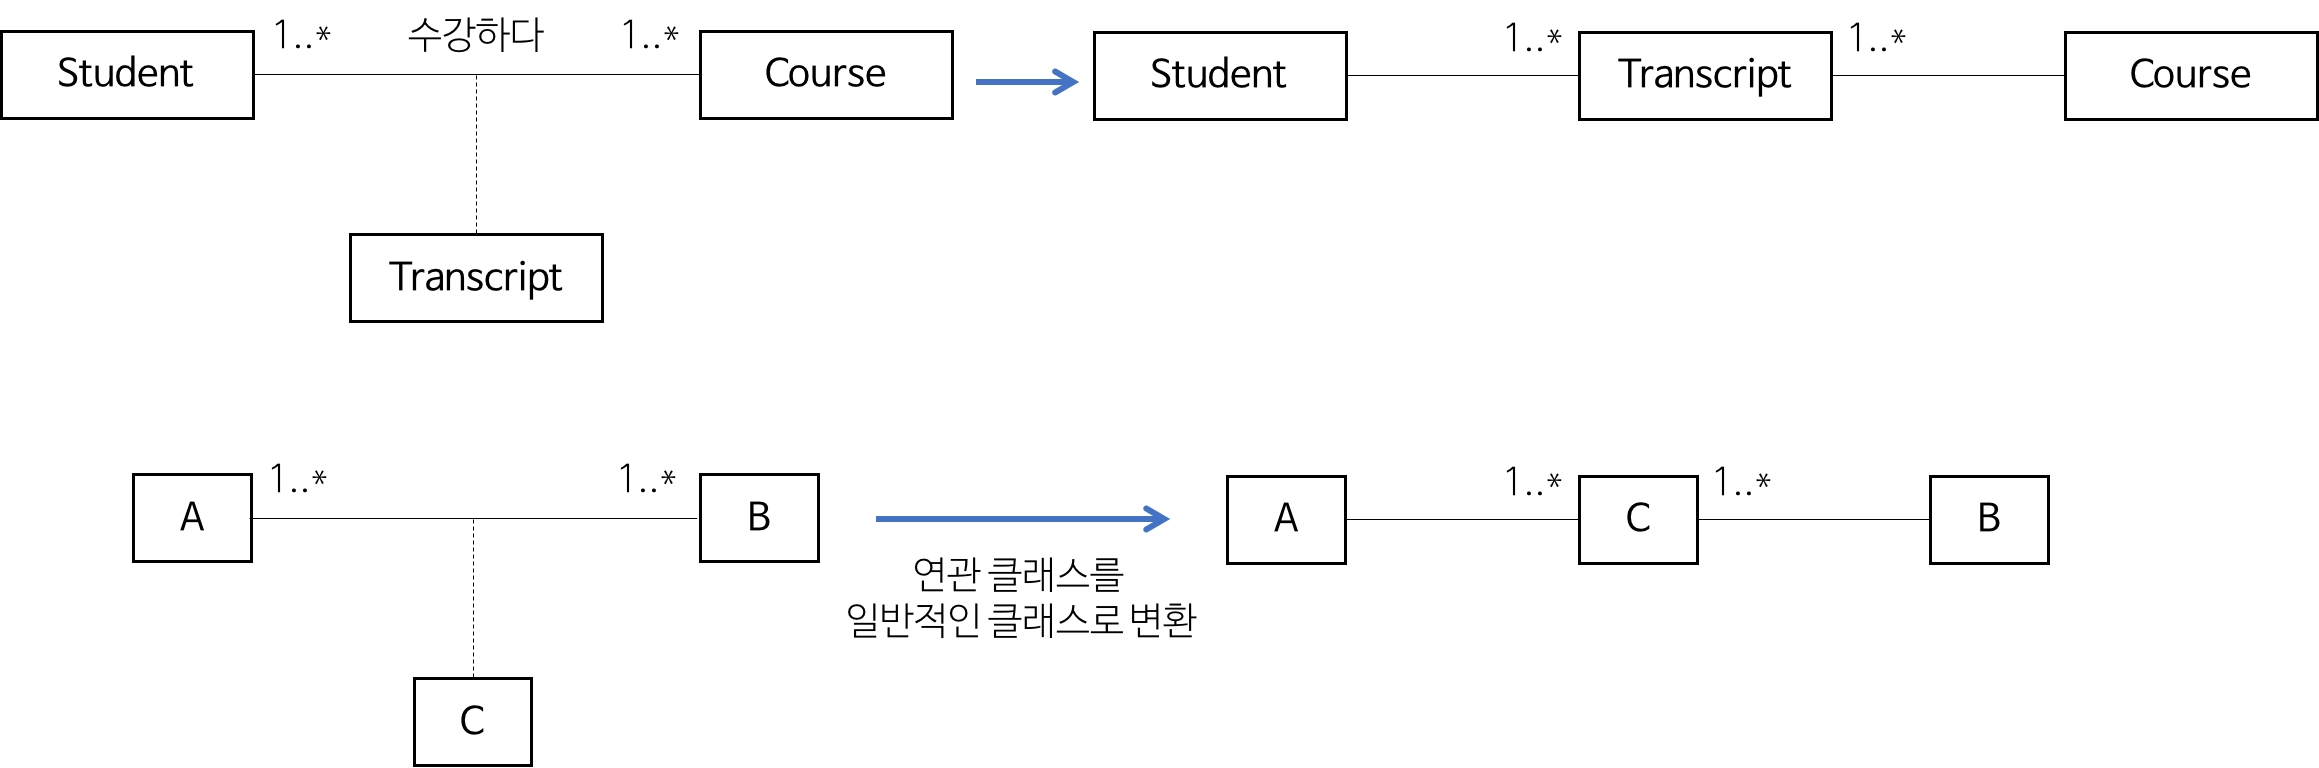 association in class diagram example club car 48 volt battery wiring uml 클래스 다이어그램 작성법 heee 39s development blog